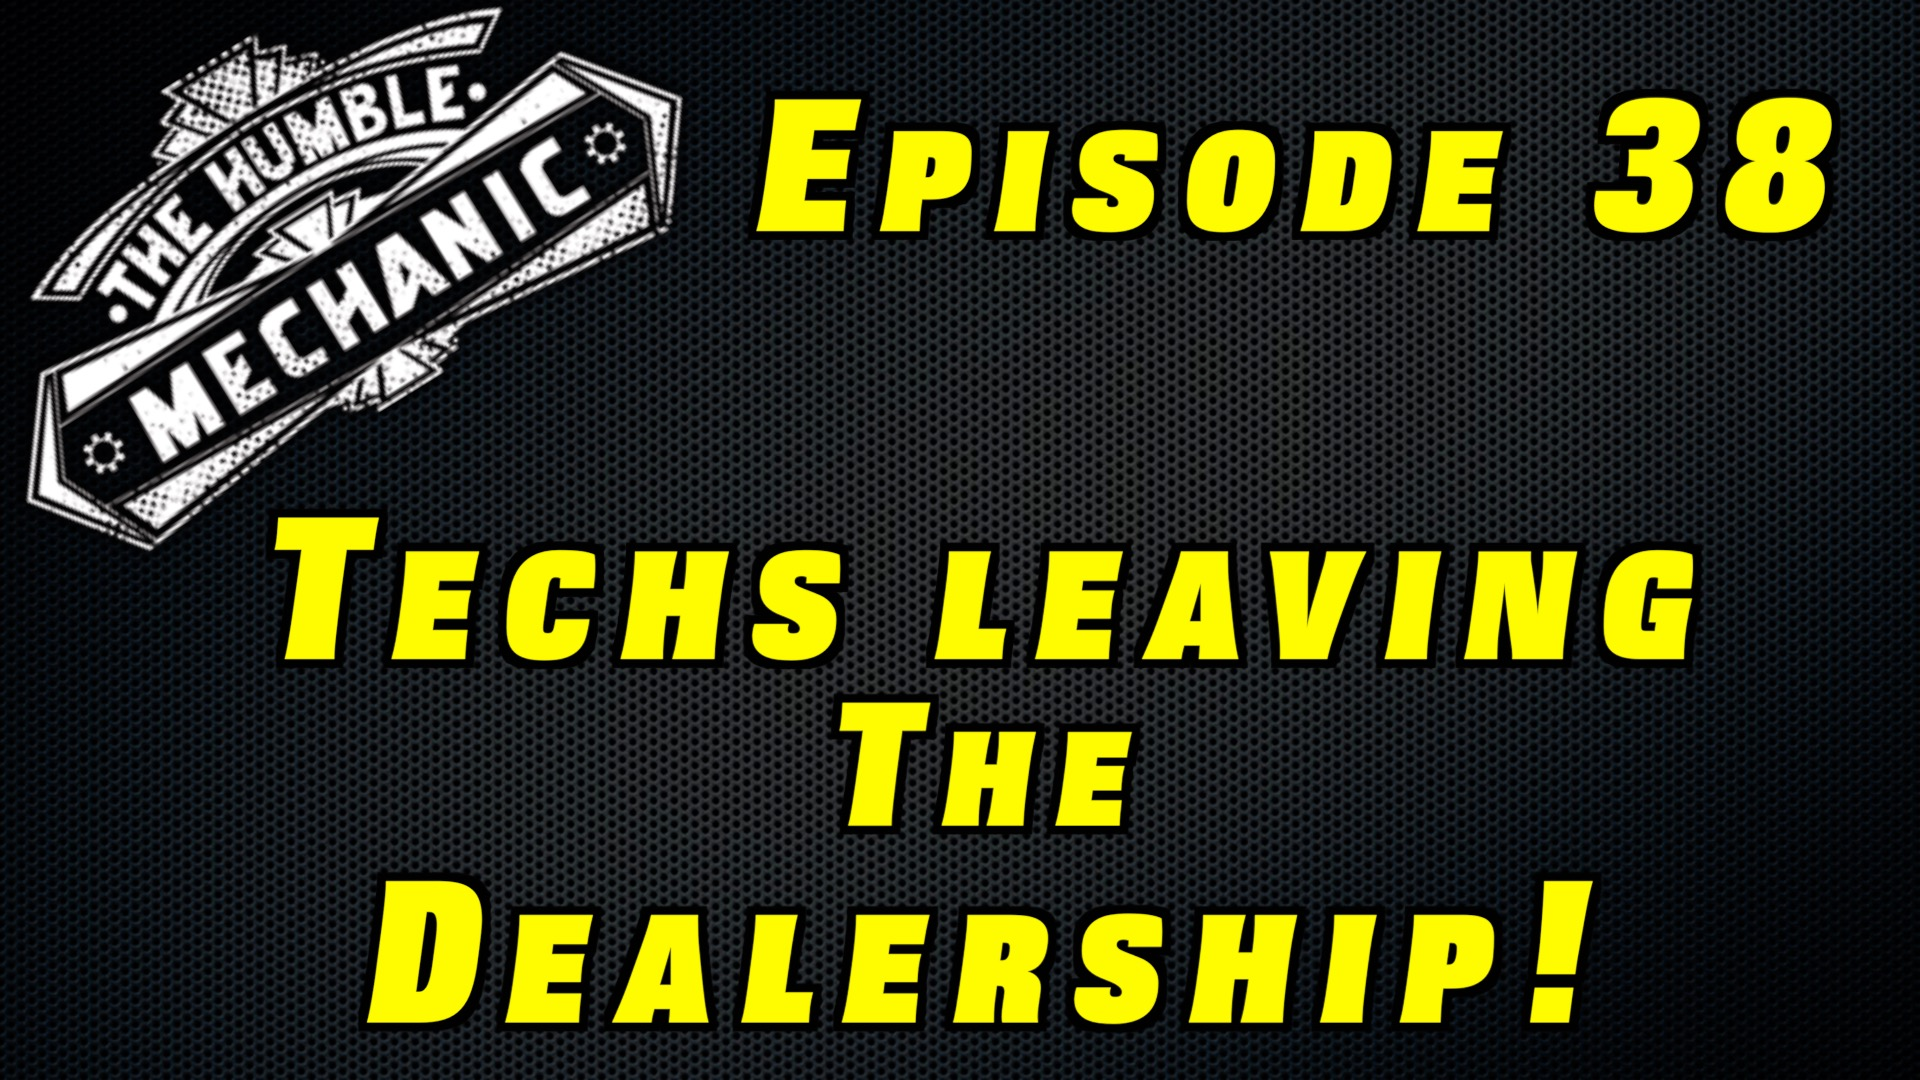 Technicians Moving Away From Dealerships ~ Audio Podcast Episode 38